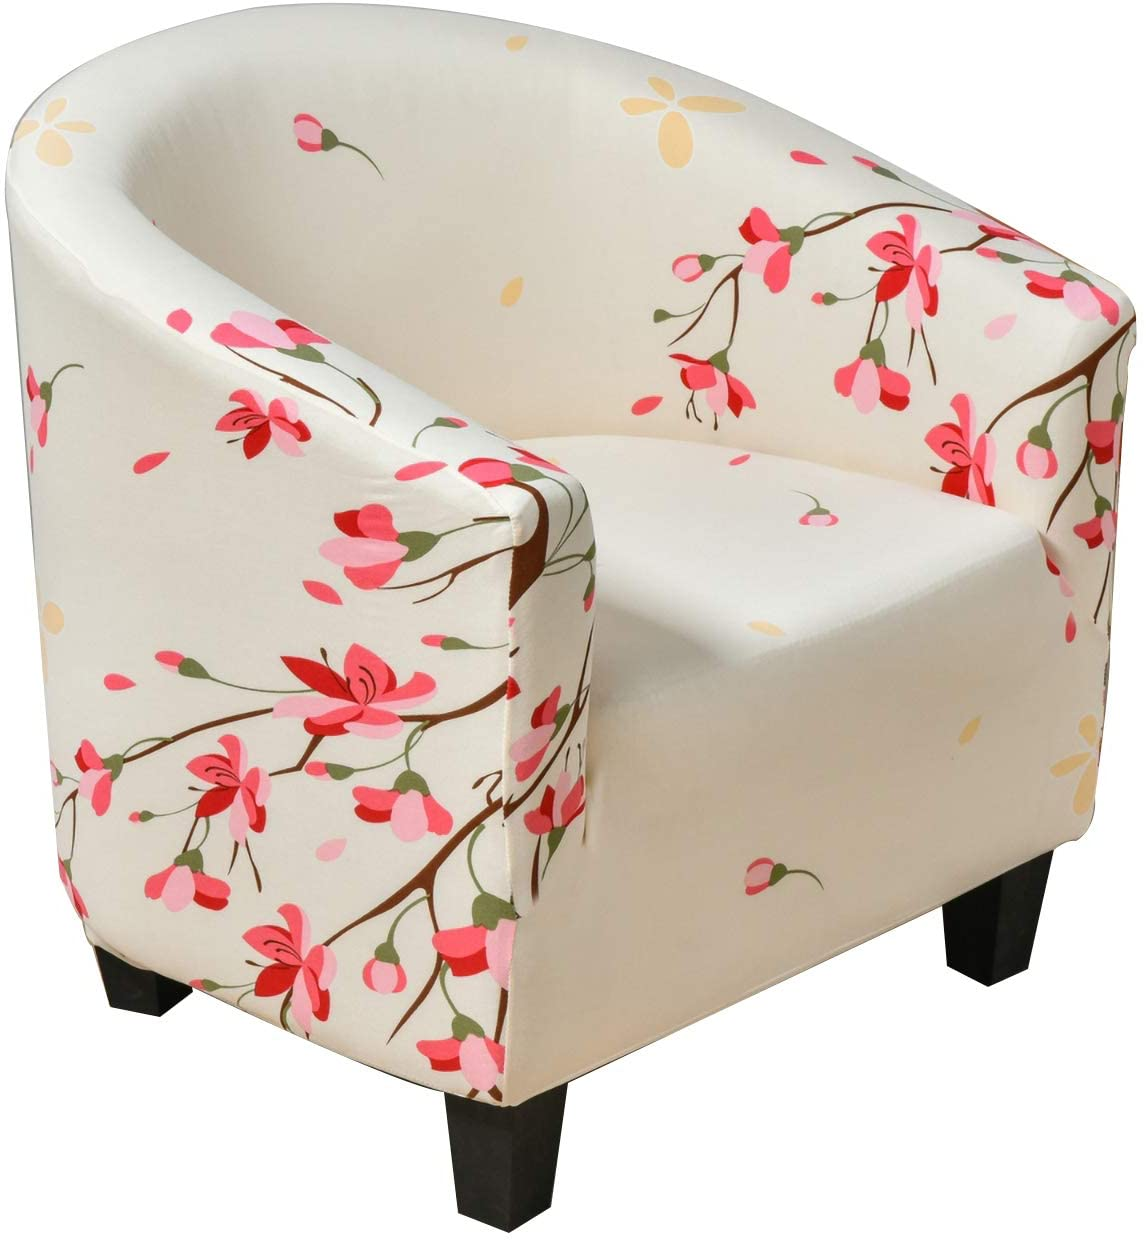 Anchengcraft Club Chair Slipcover 1-Piece Printed Tub Chair Covers Sofa Cover Spandex Couch Covers for Bar Counter Living Room (15)